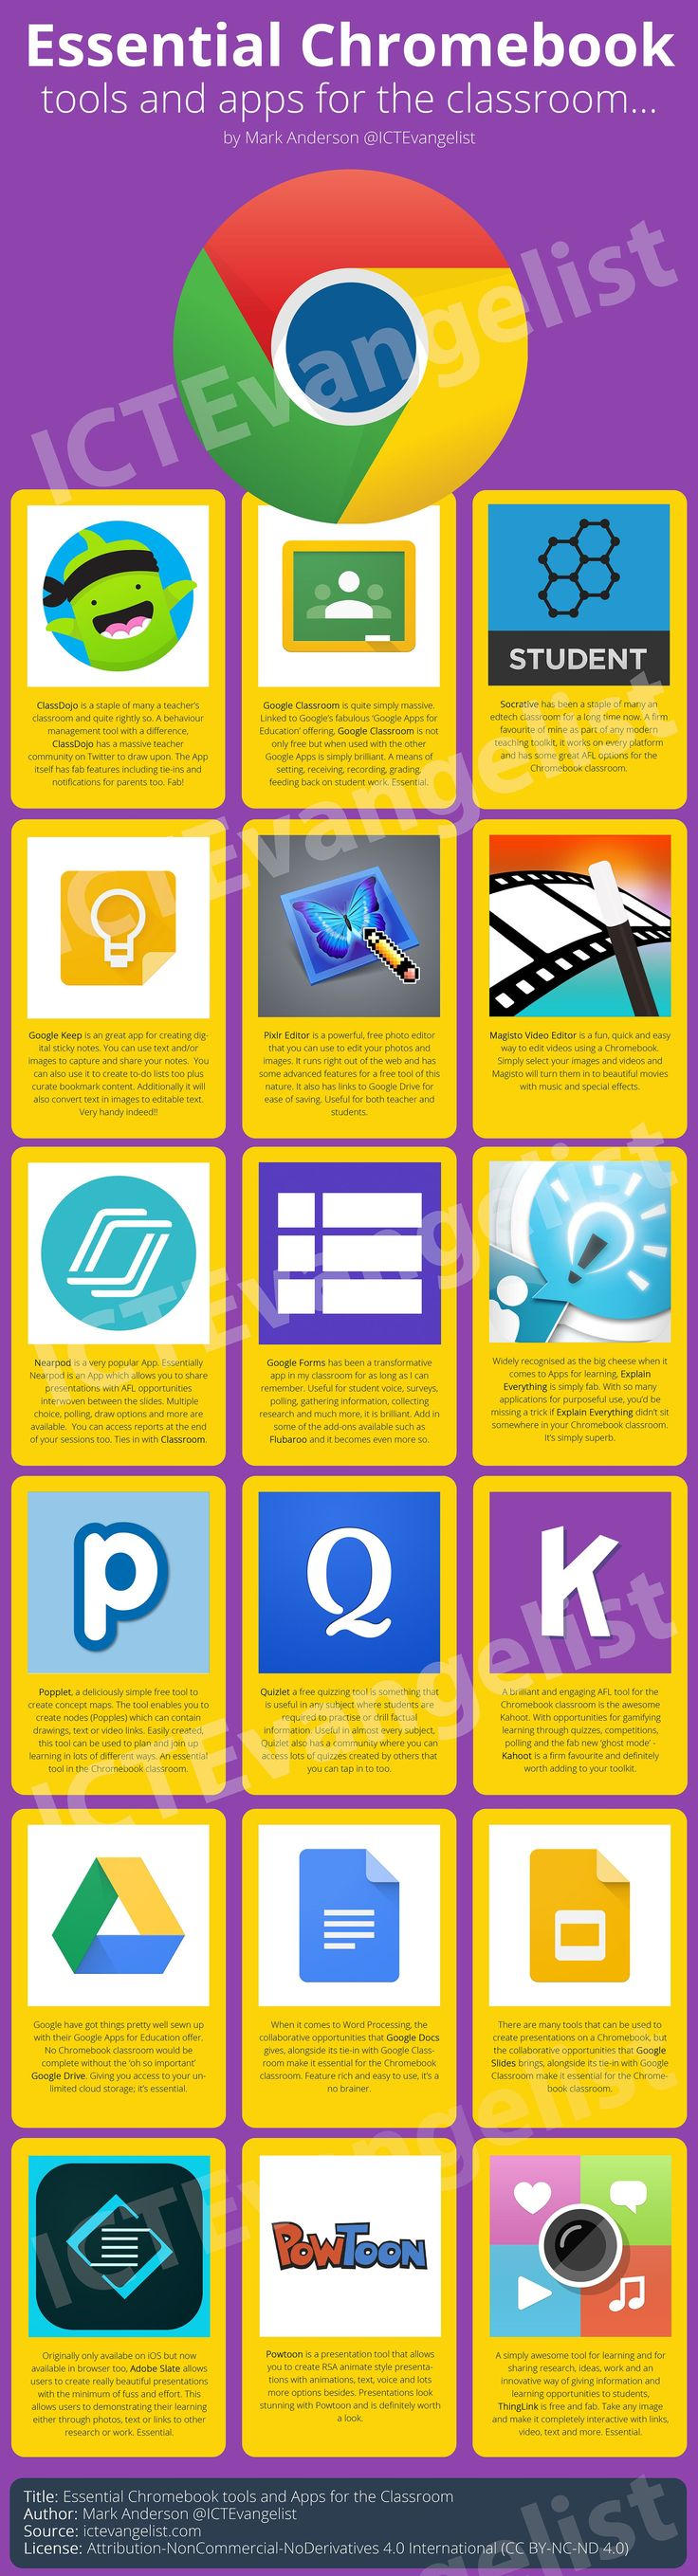 Essential Chromebook Tools.  *Education, EdTech, teaching, teachers, blended learning.